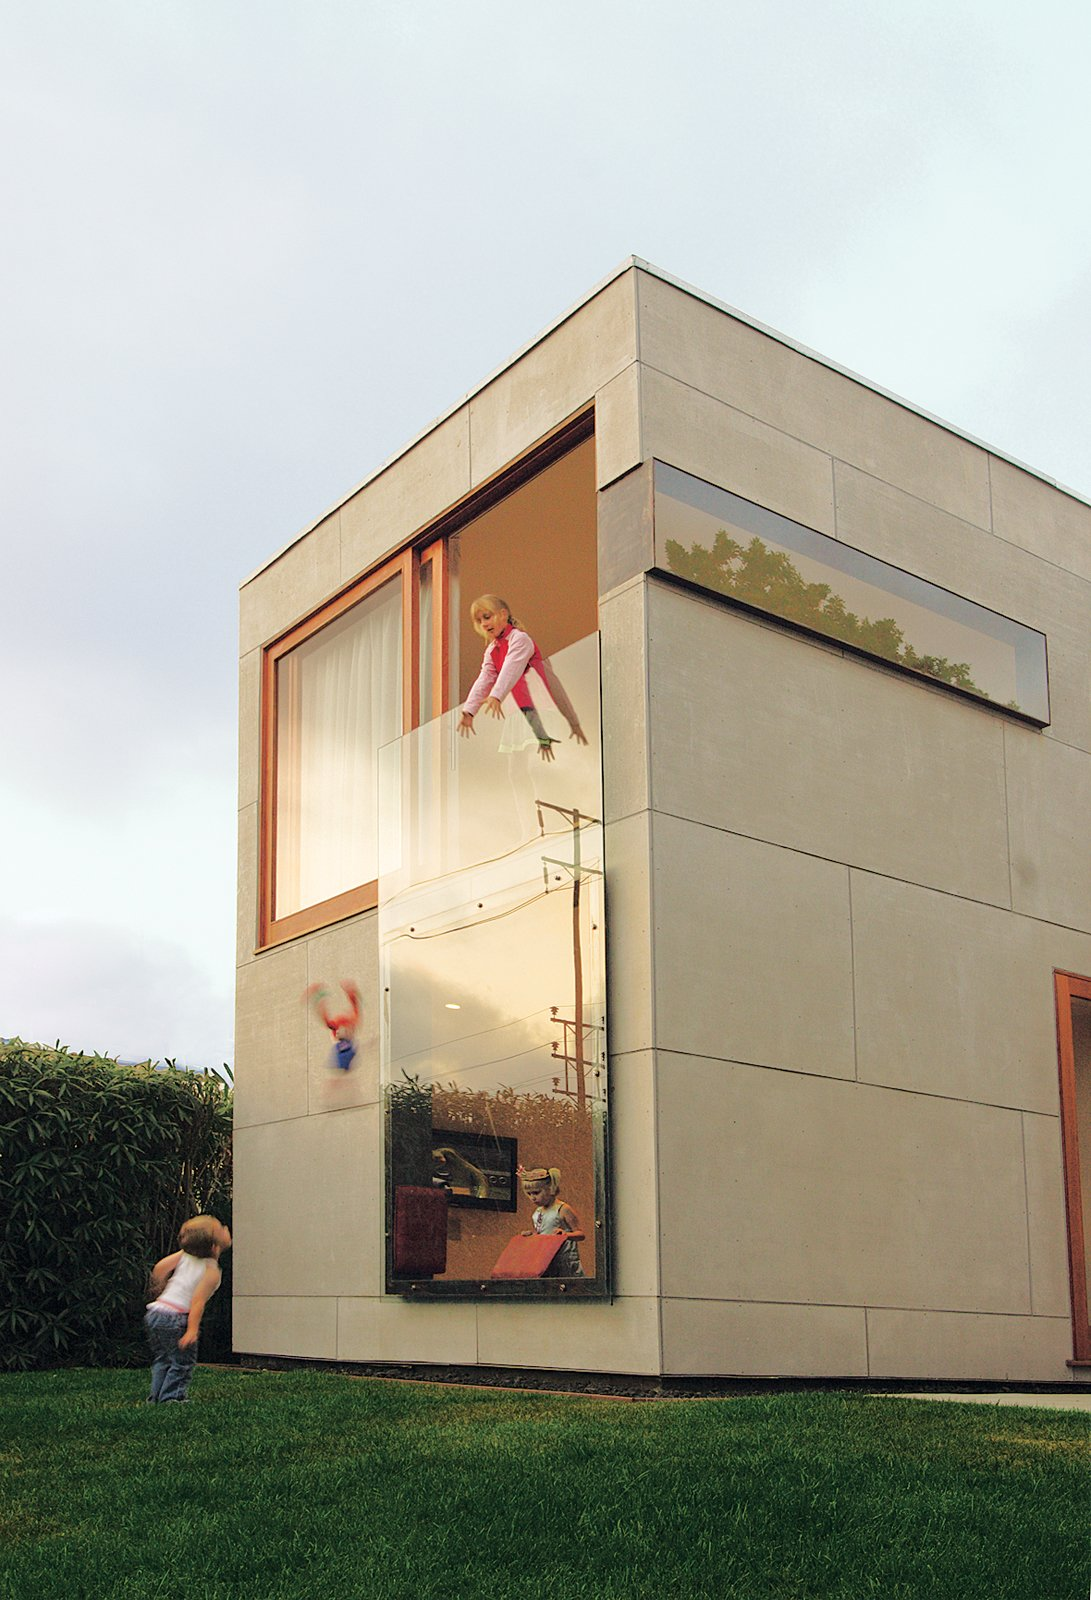 An 8-by-12-foot piece of tempered glass on the front of the house serves as a window for the first-floor den and a railing for the second-floor office. Tagged: Outdoor and Grass. Building Green in Santa Monica - Photo 3 of 5